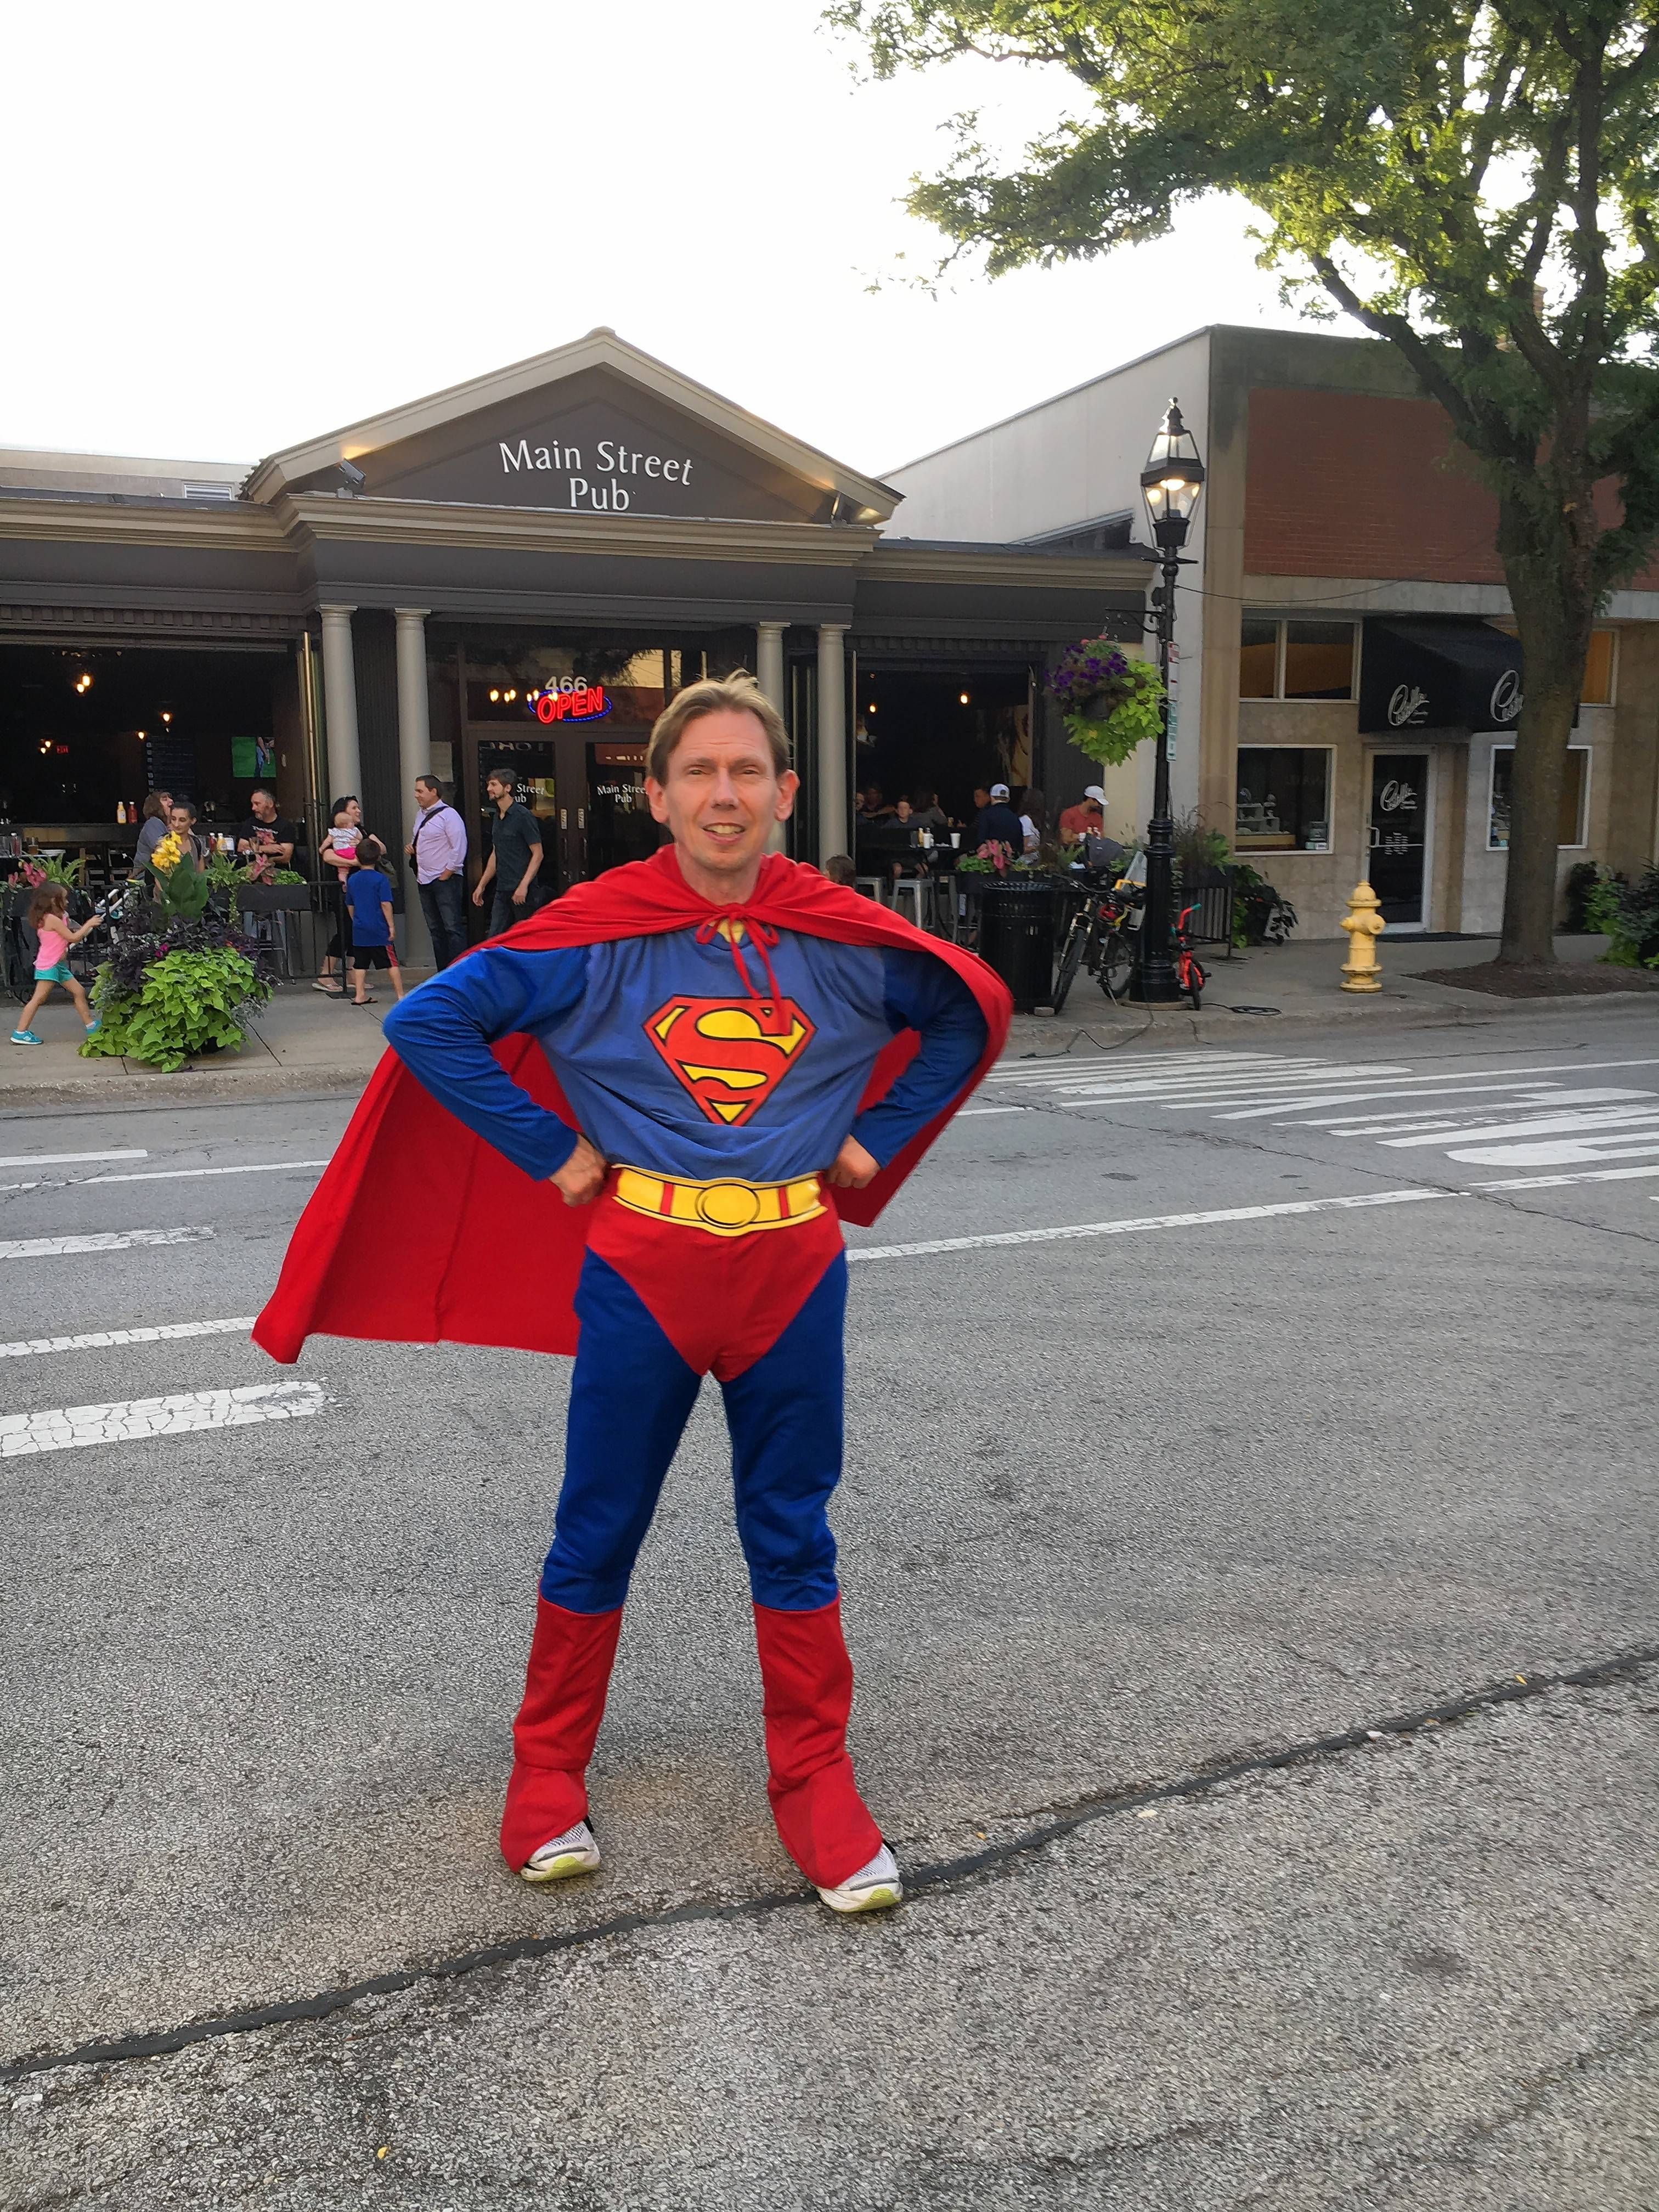 Editorial: 'Superman' fans boost hope in humanity